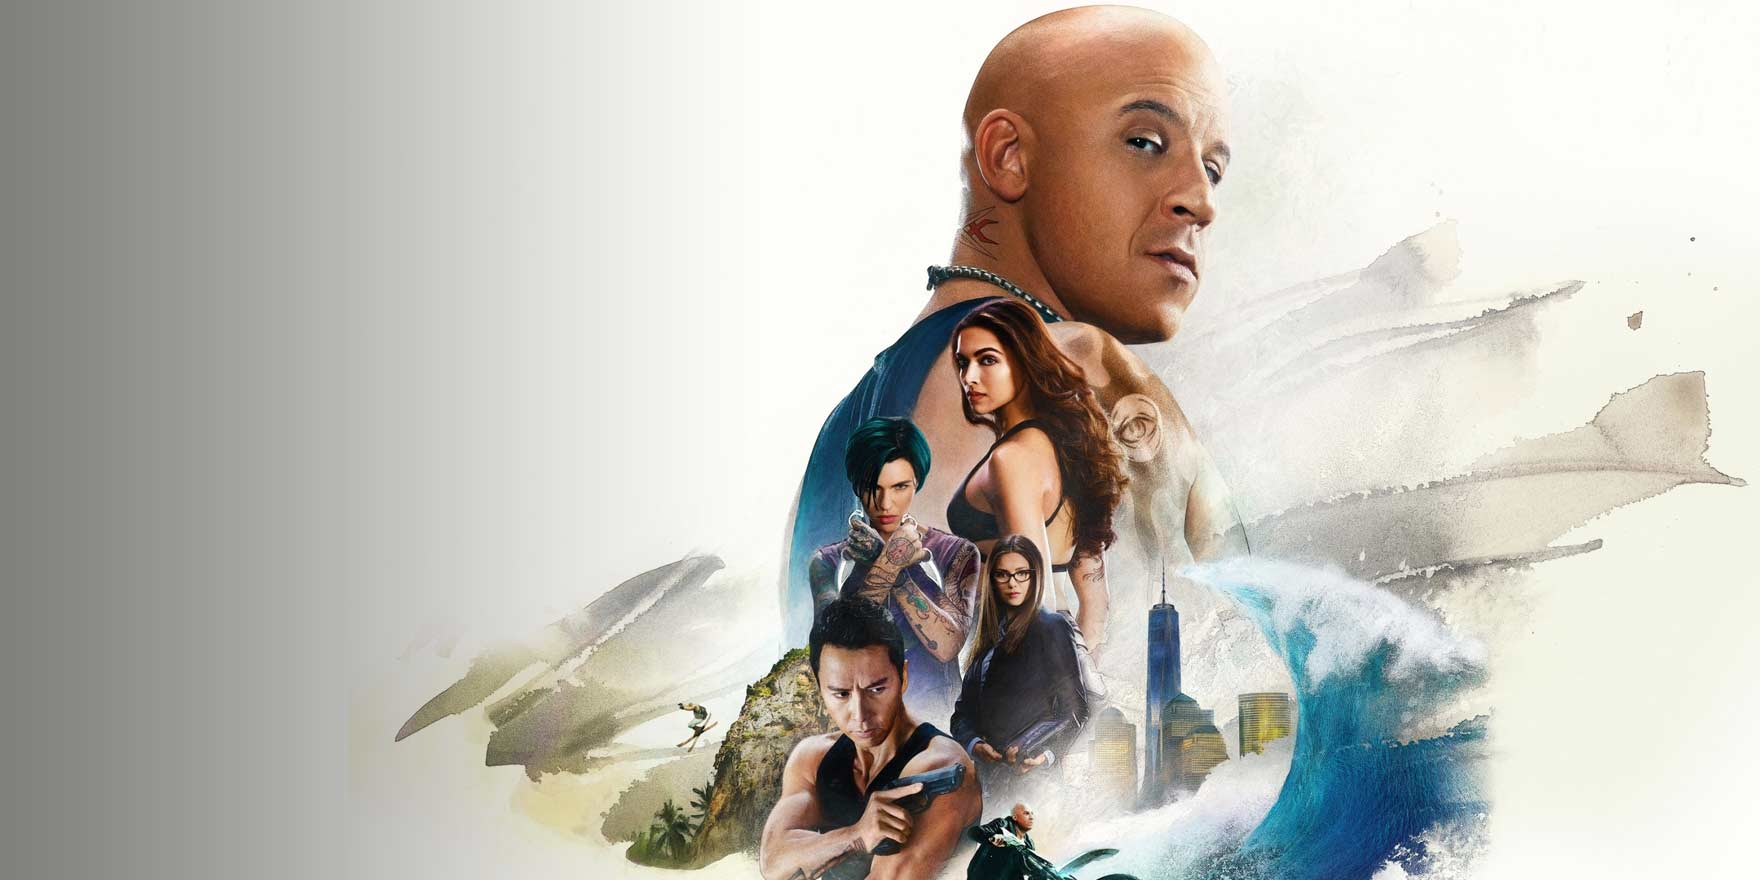 xXx: Return of Xander Cage - Header Image